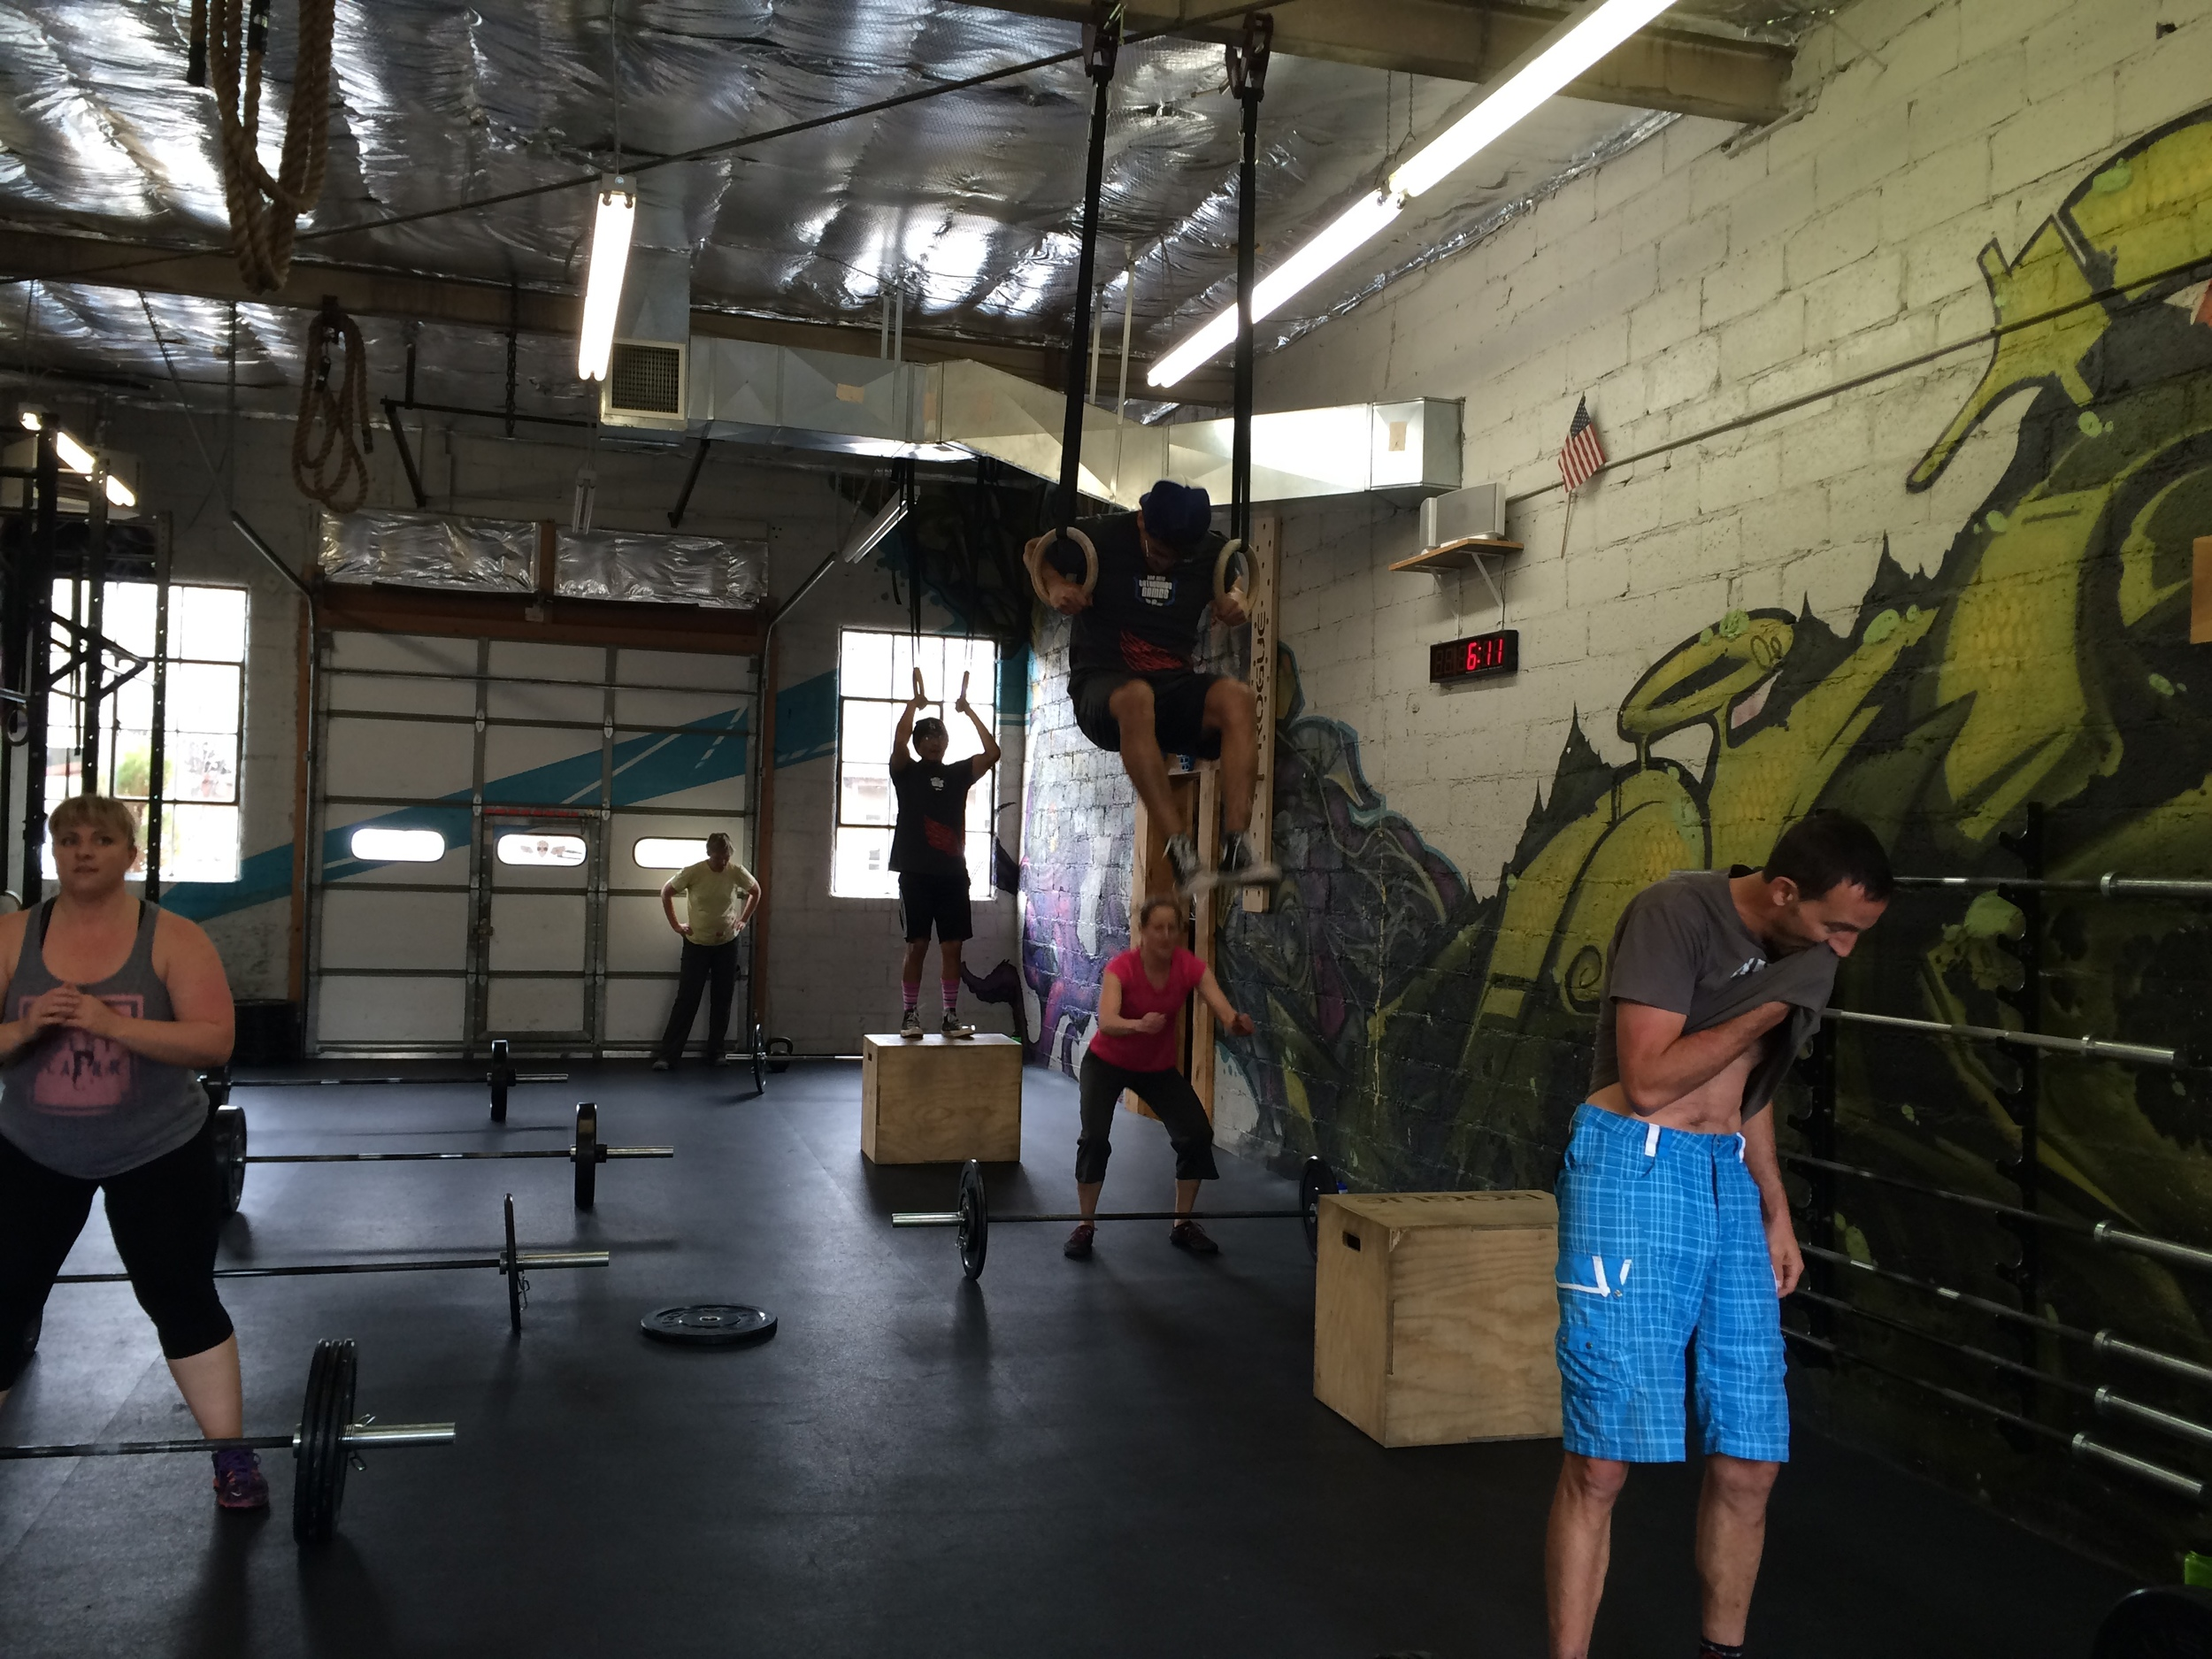 Lots of ground gained on muscle ups today.